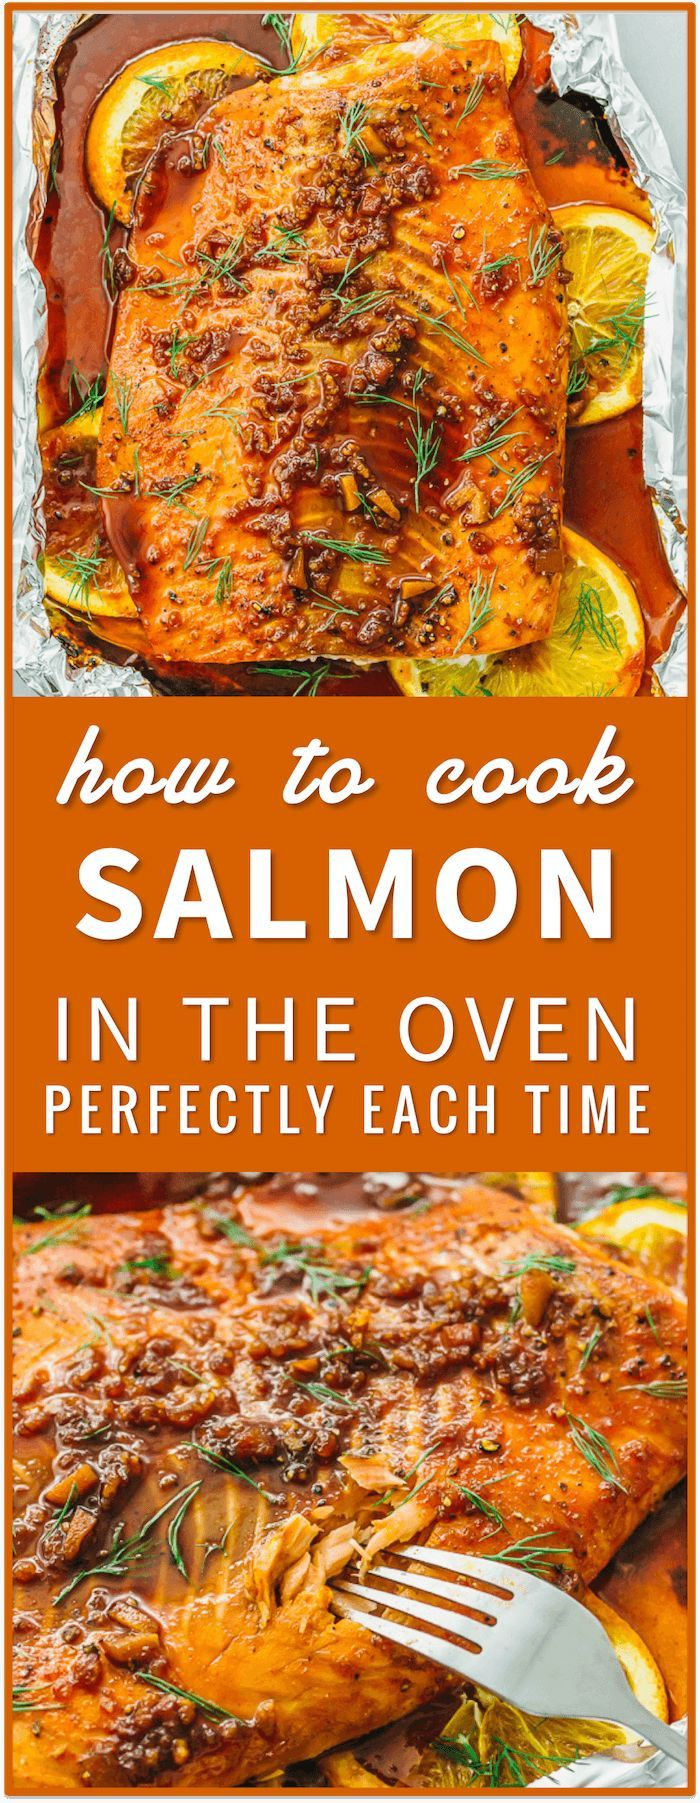 Learn how to cook salmon in the oven perfectly every time using this easy foolproof recipe. in a pan, on the grill, in foil, frozen salmon, baked, pan seared, best, patties, healthy, salad, dinner, honey, blackened